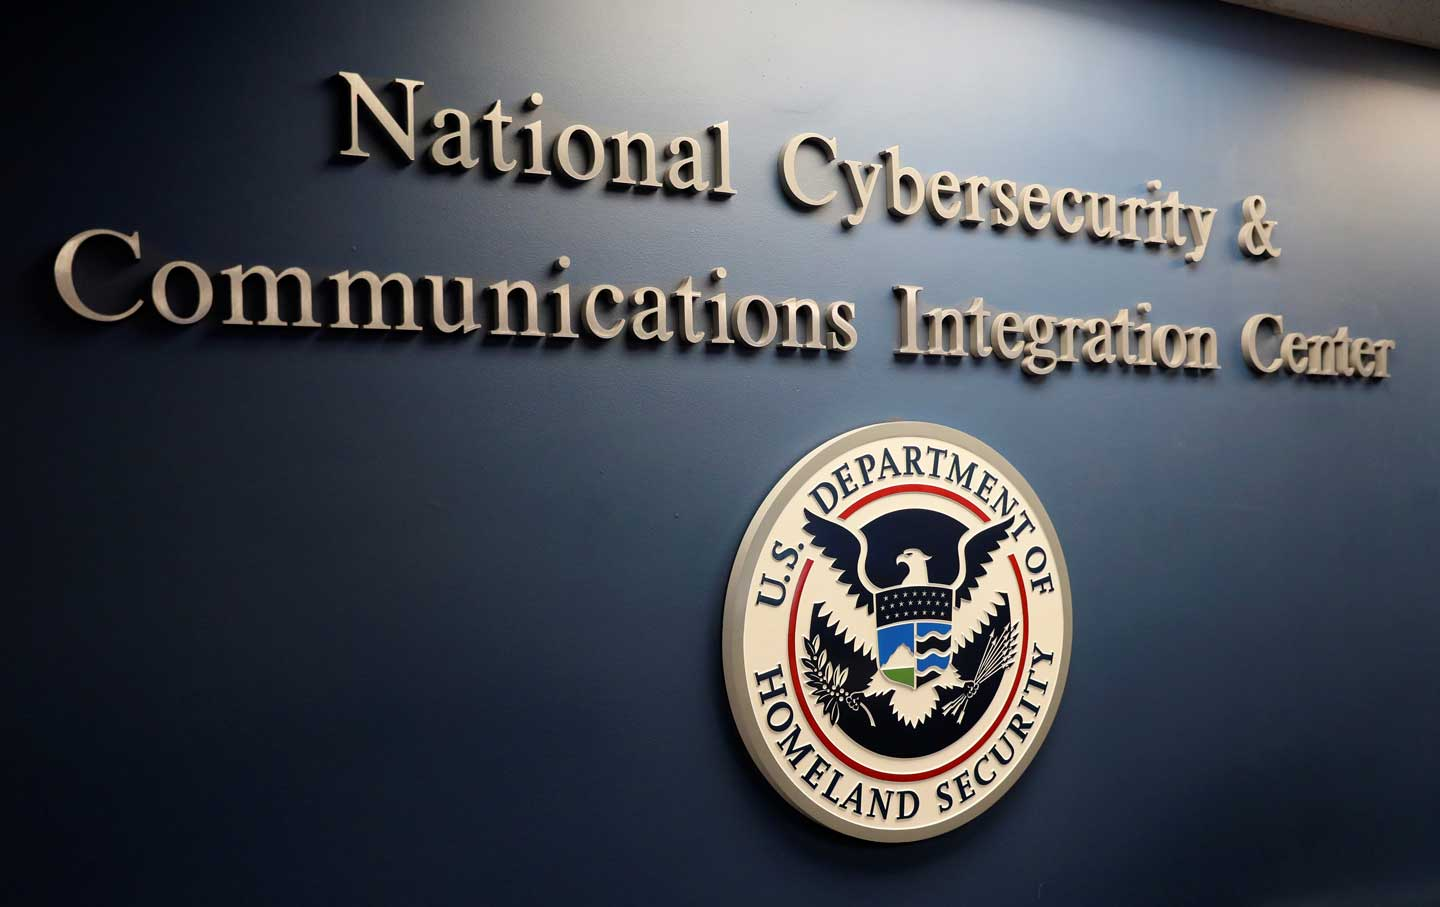 National Cybersecurity and Communications Integration Center (NCCIC)